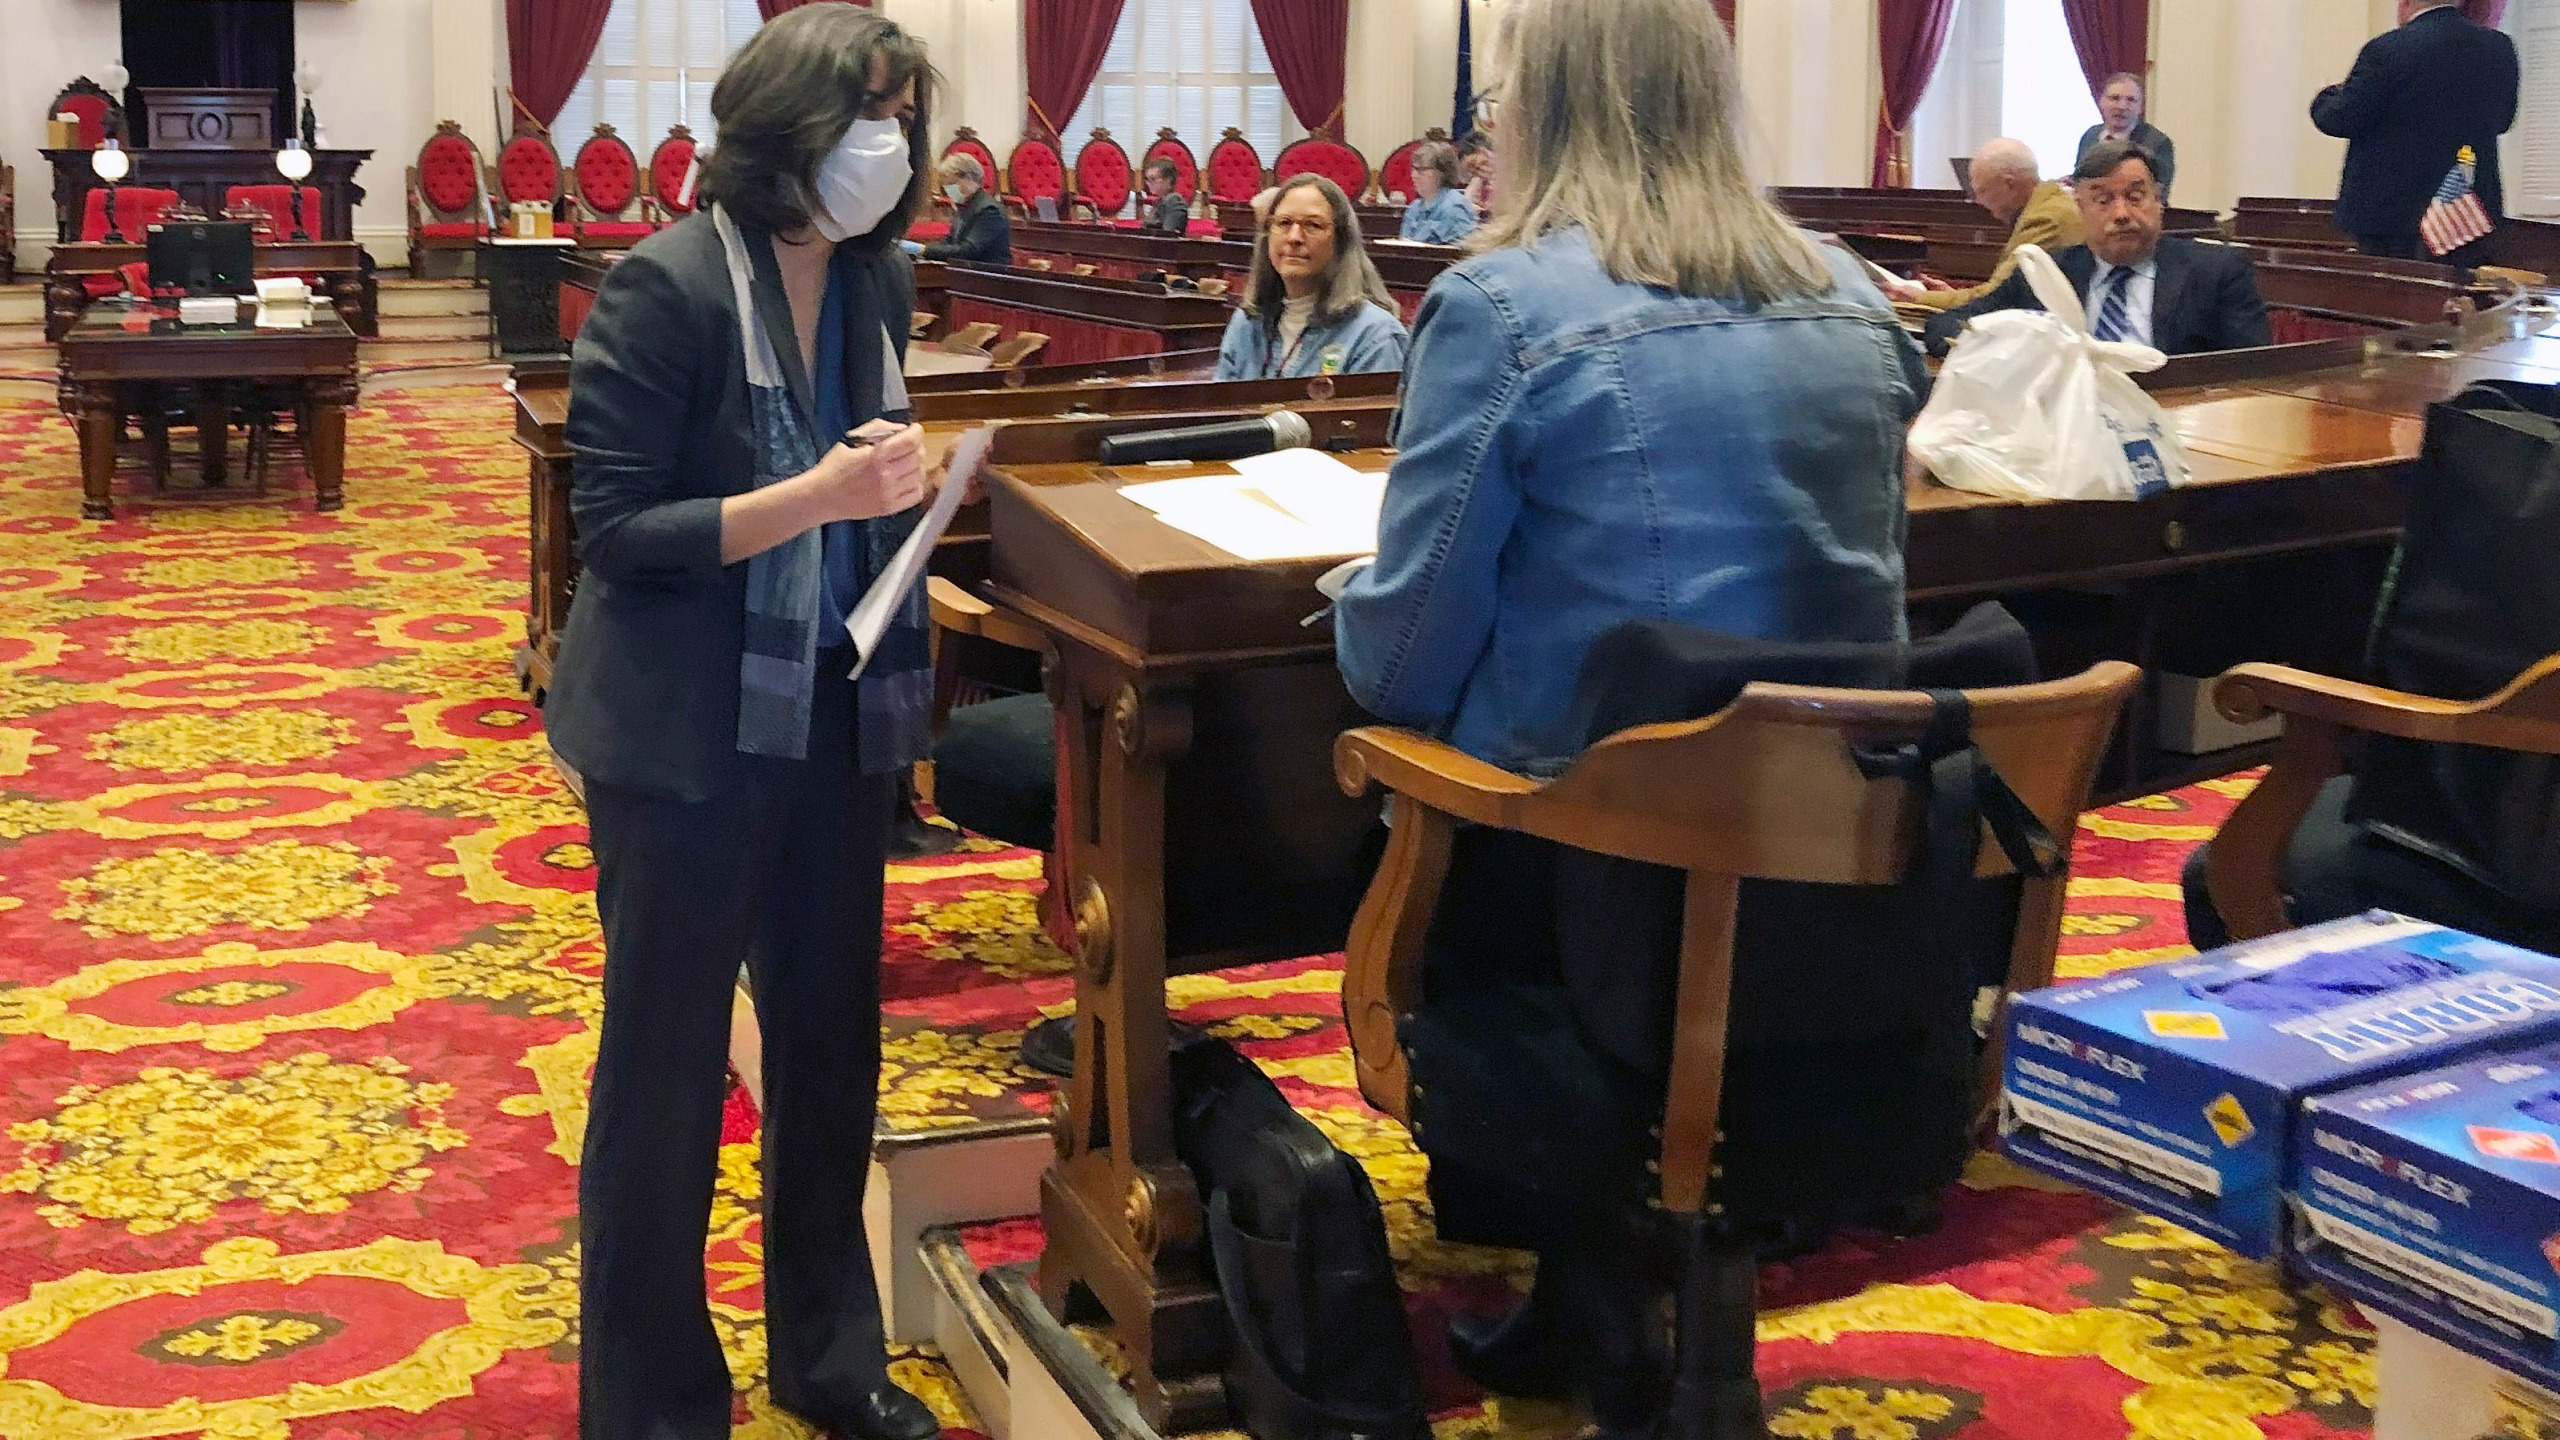 Vermont House Speaker Mitzi Johnson, left, wears a mask while talking to a lawmaker in the Vermont house chamber at the Statehouse in Montpelier, Vt. In state capitols across the U.S., lawmakers have ditched decorum and sidestepped traditional public meeting requirements in a rush to pass legislation funding the fight against the coronavirus and aiding residents affected by the widespread shut down of commerce. (AP Photo/Wilson Ring, File)